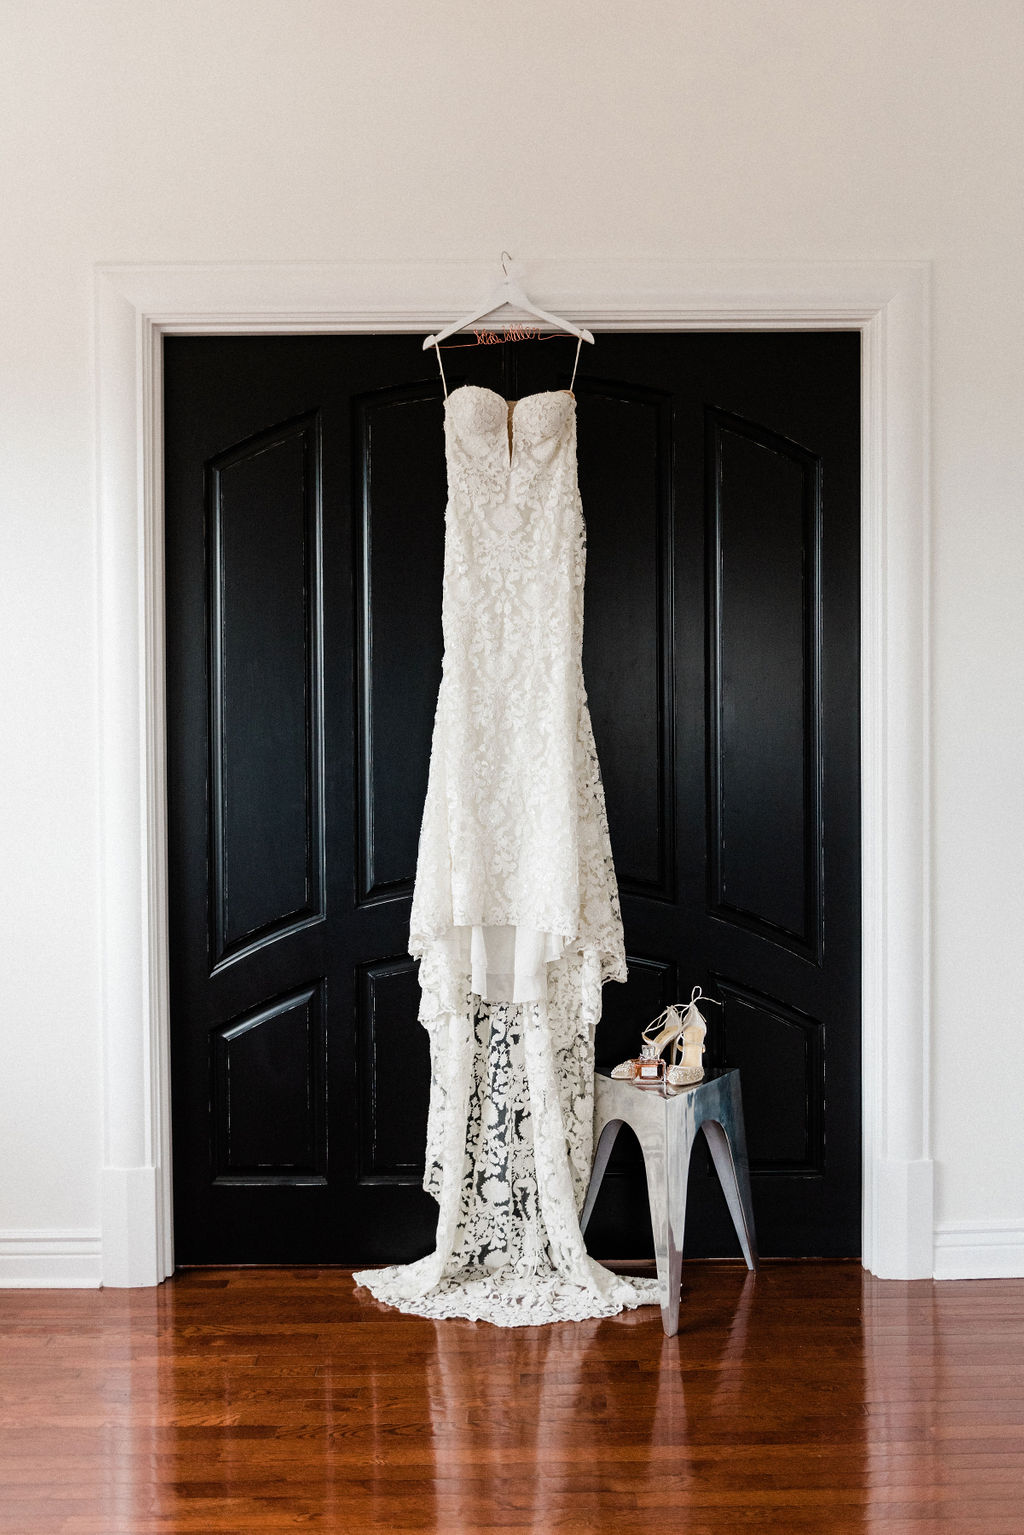 A bridal gown hanging